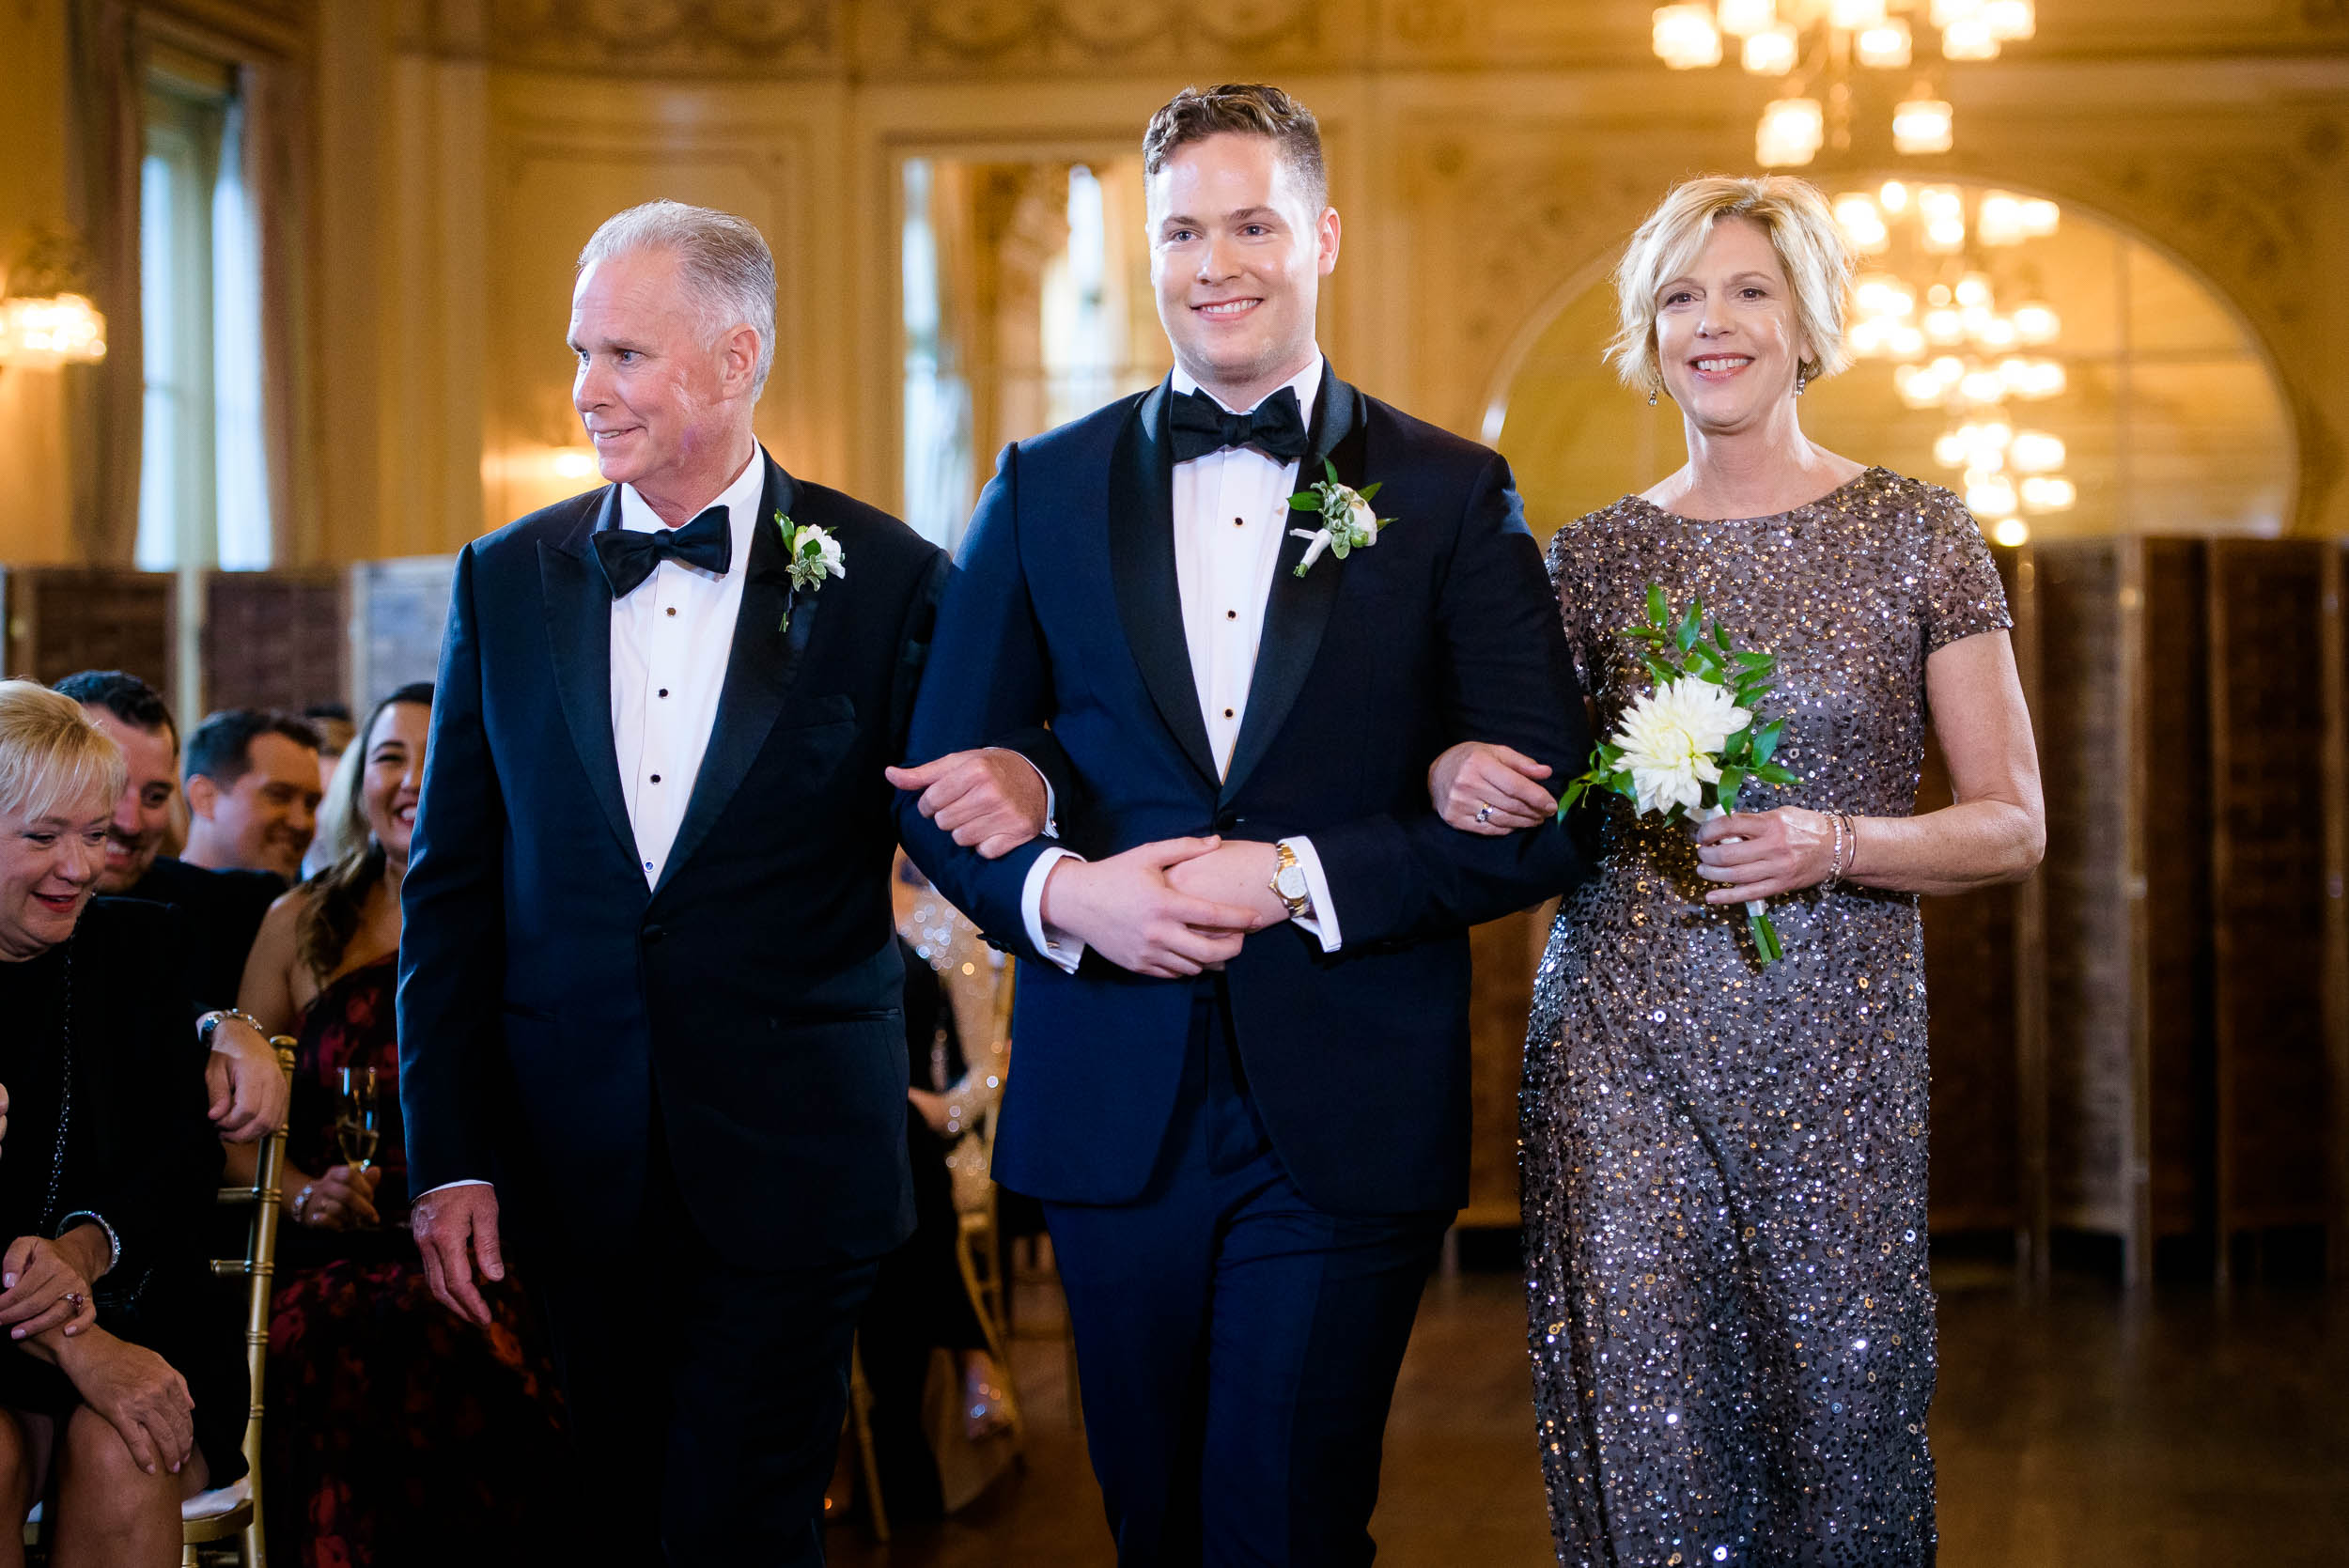 Groom walking down the aisle for luxurious fall wedding at the Chicago Symphony Center captured by J. Brown Photography. See more wedding ideas at jbrownphotography.com!